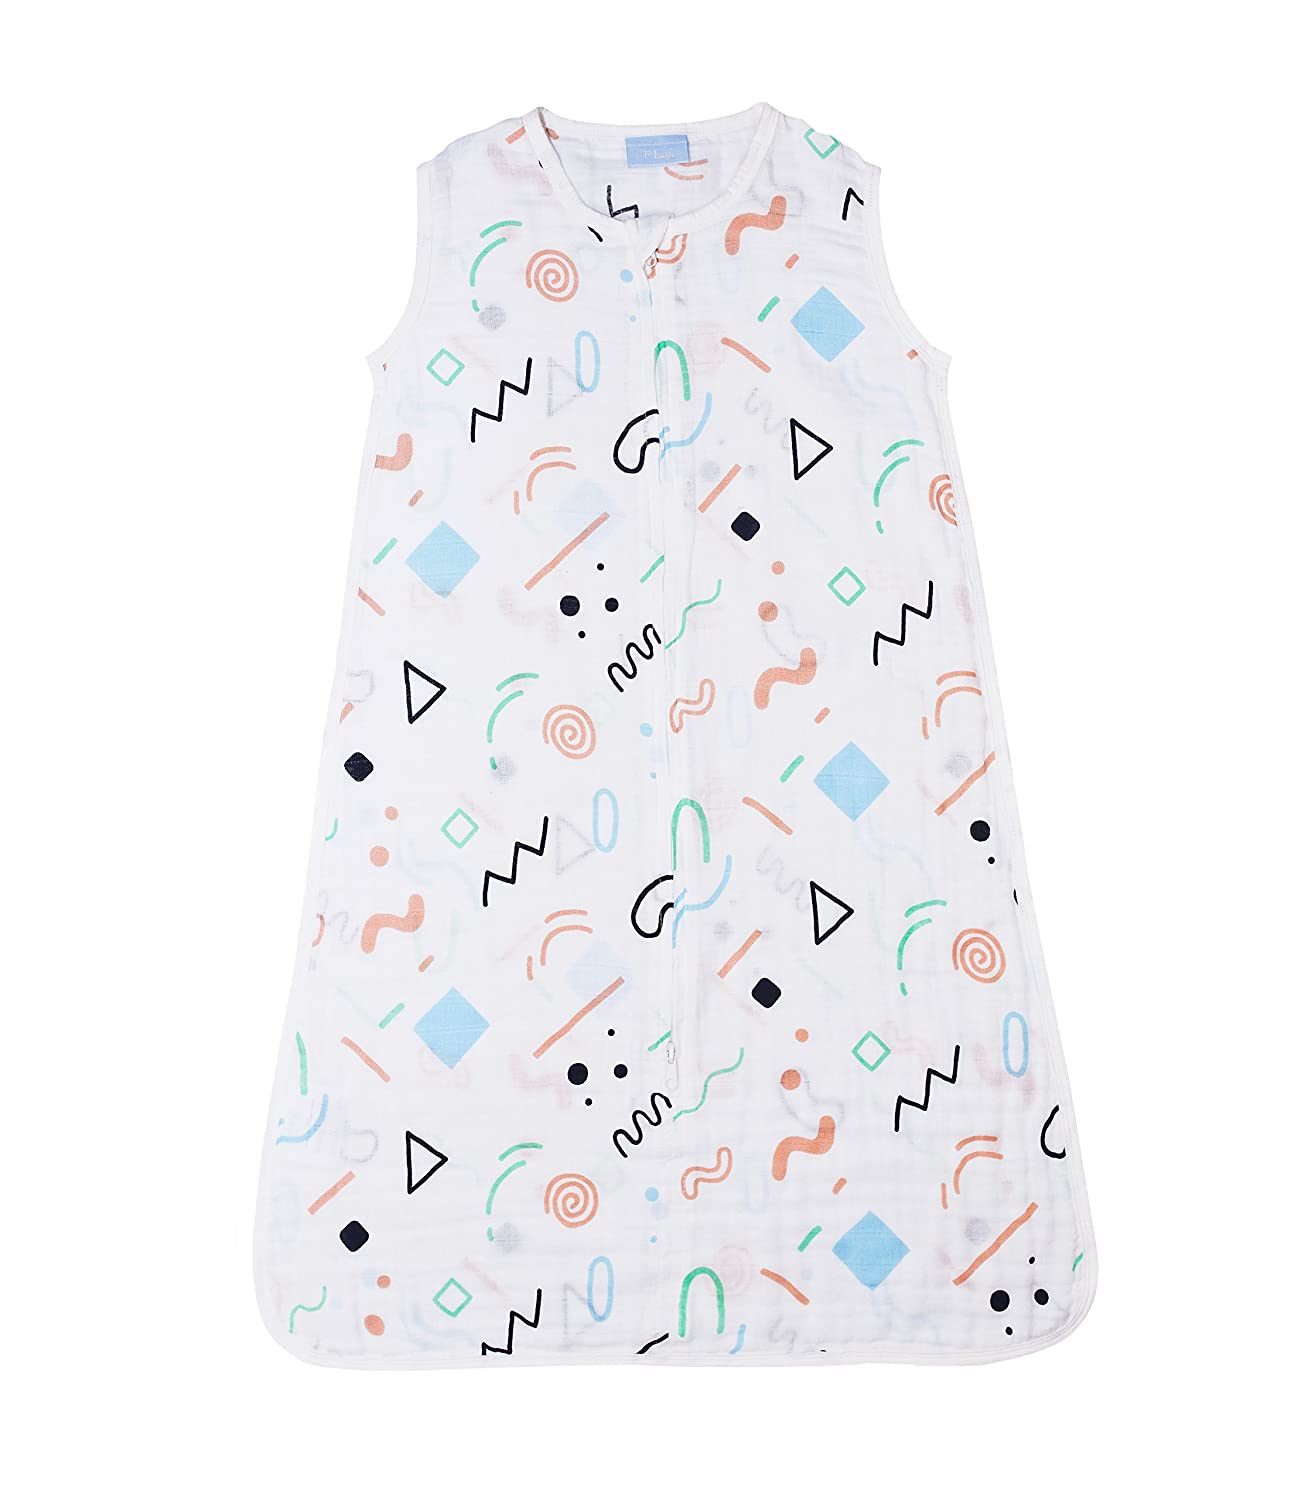 1st Laugh Baby Sleeping Sack Bag, Wearable Blanket